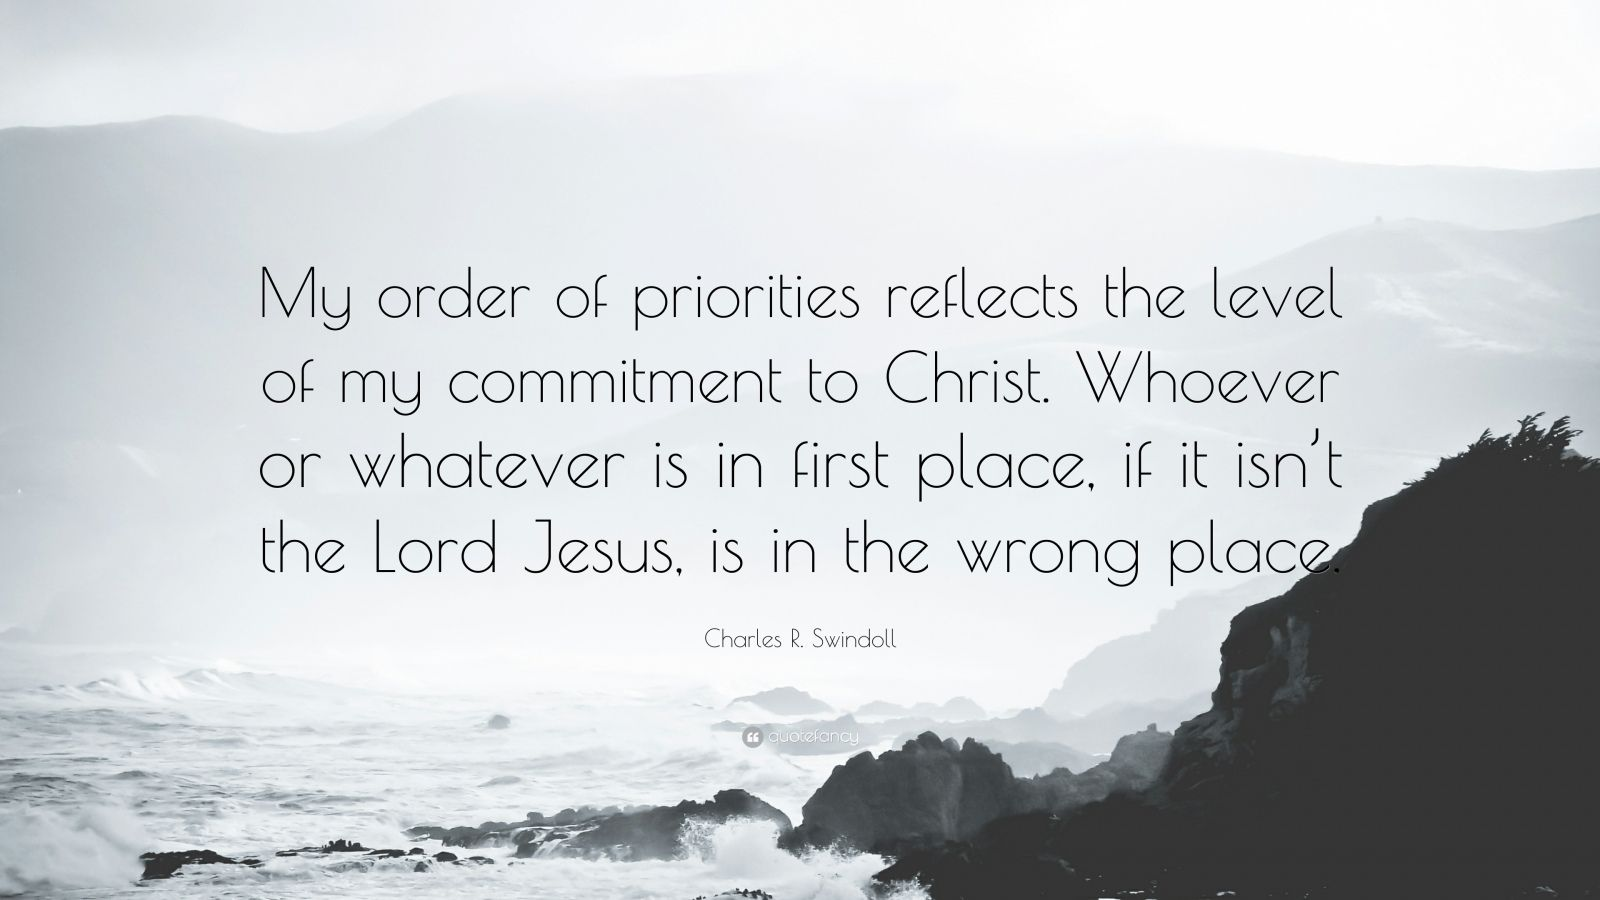 """Charles R. Swindoll Quote: """"My order of priorities reflects the level of my commitment to Christ. Whoever or whatever is in first place, if it isn't the Lord Jesus, is in the wrong place."""""""